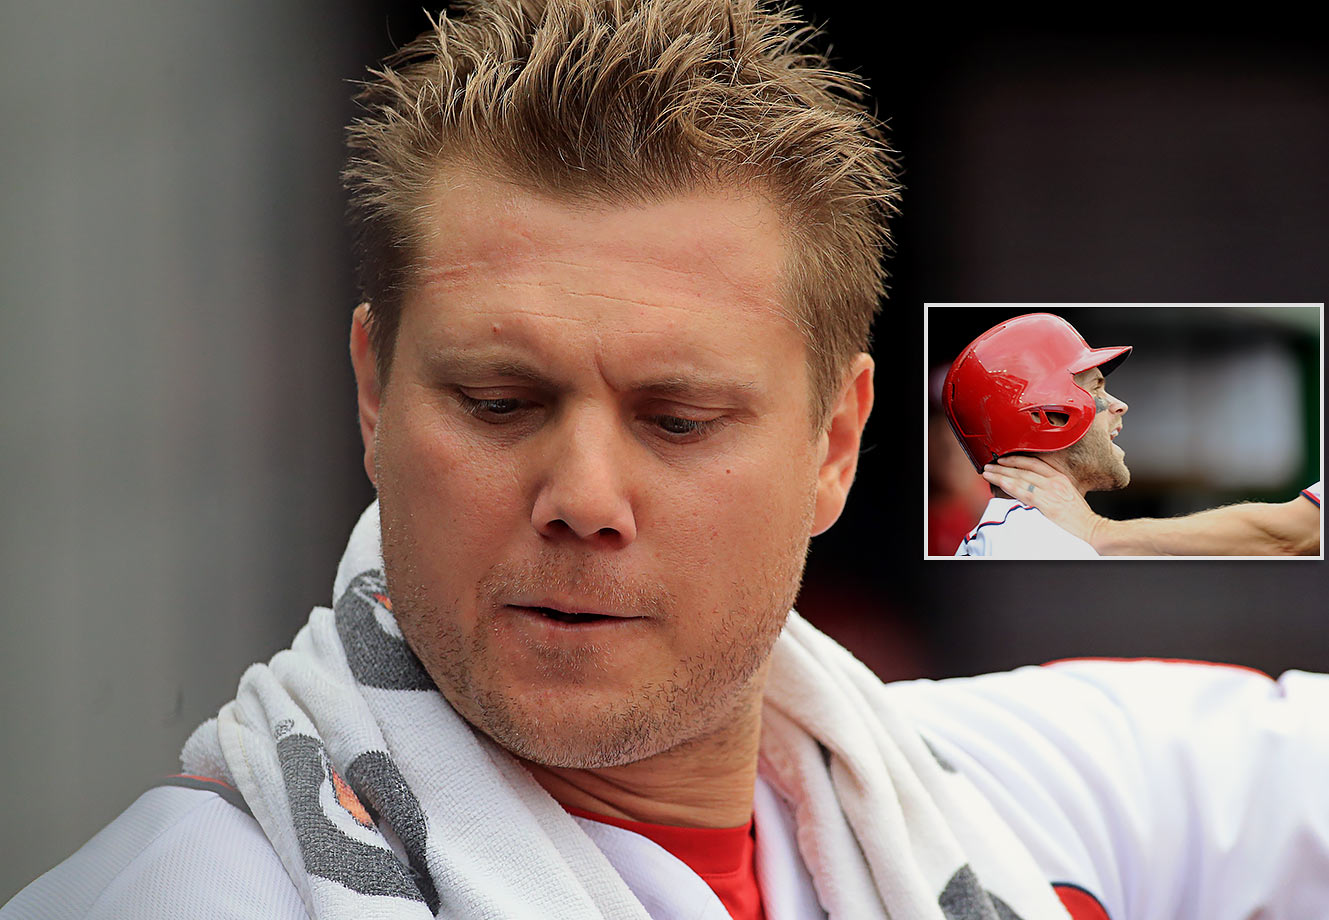 IK Enemkpali got released for punching Geno Smith, so you figure choking a co-worker would also be a fireable offense. Or not, as we learned from Jonathan Papelbon. Sure Papelbon got suspended for a few games after wringing Bryce Harper's neck, but he'll be back in Washington next season—barring a trade, of course.